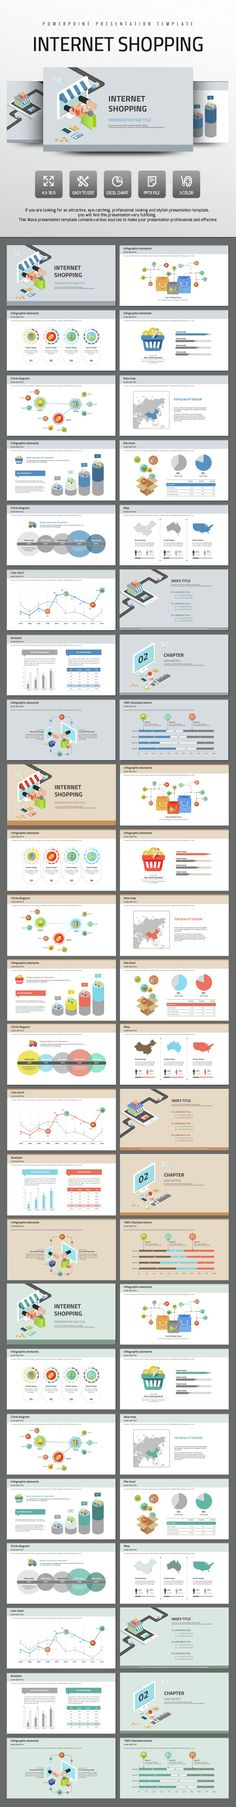 Internet Shopping (PowerPoint Templates)